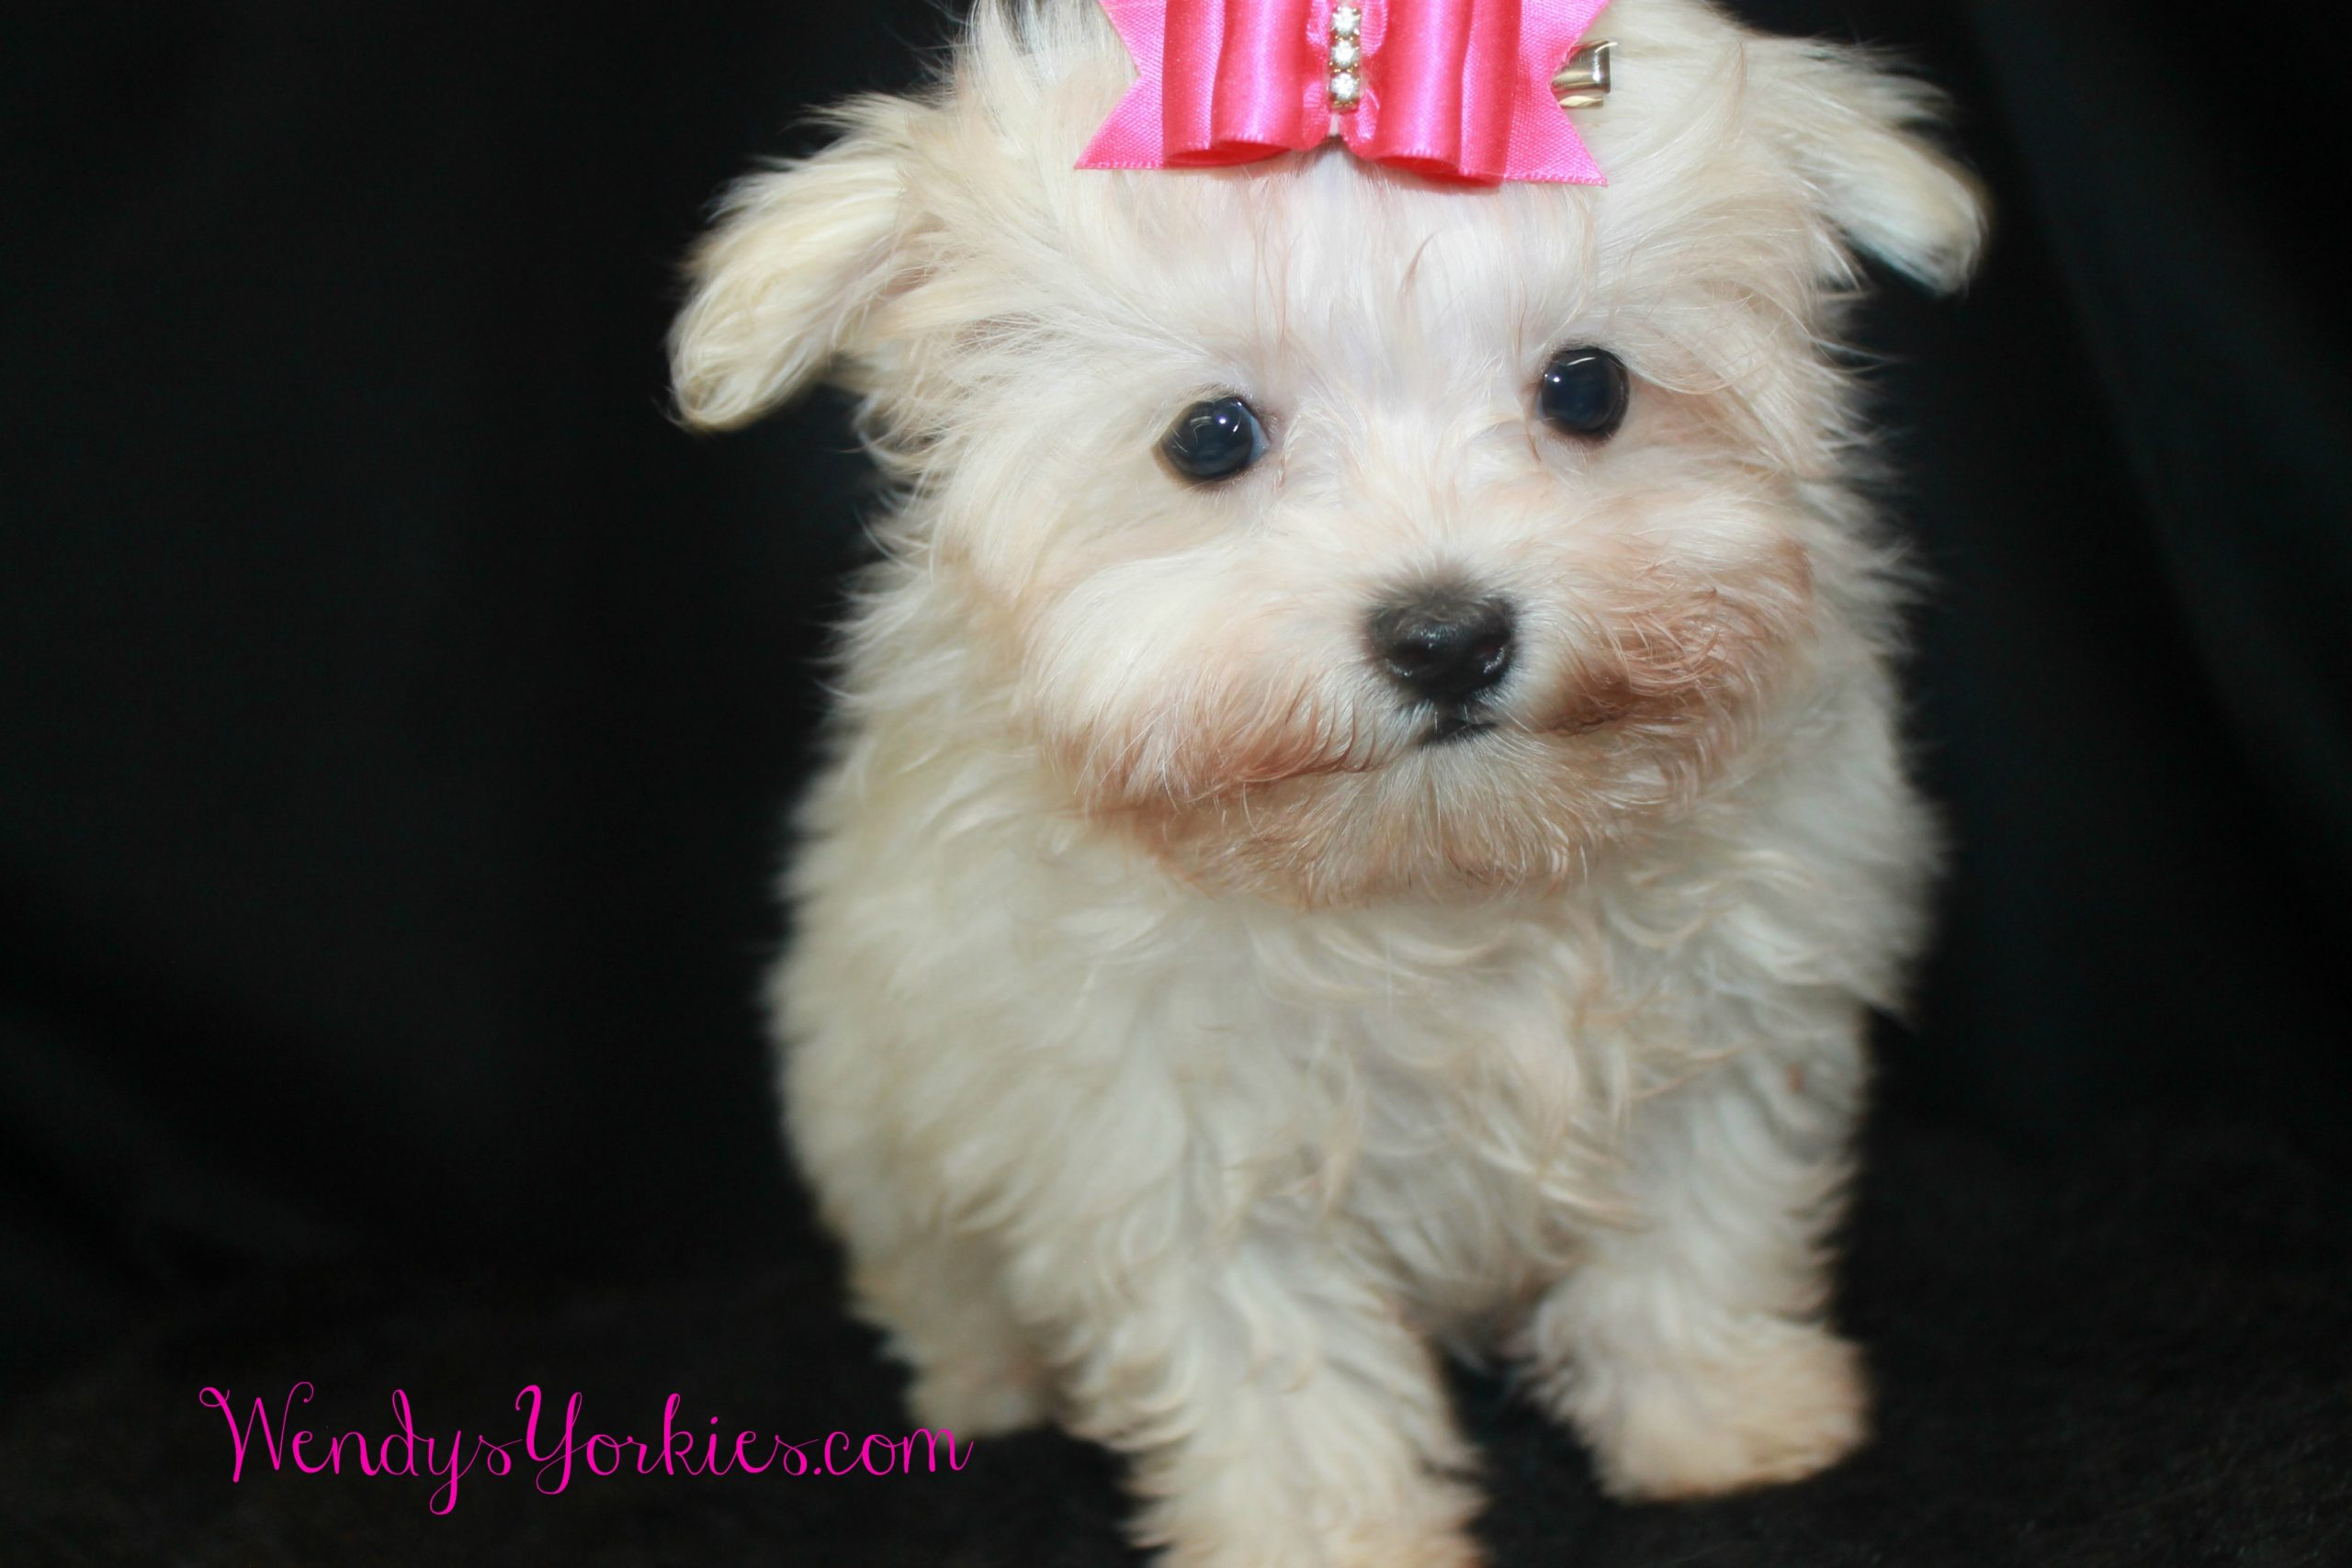 Teacup Maltese puppy for sale, Snowy, WendysYorkies.com